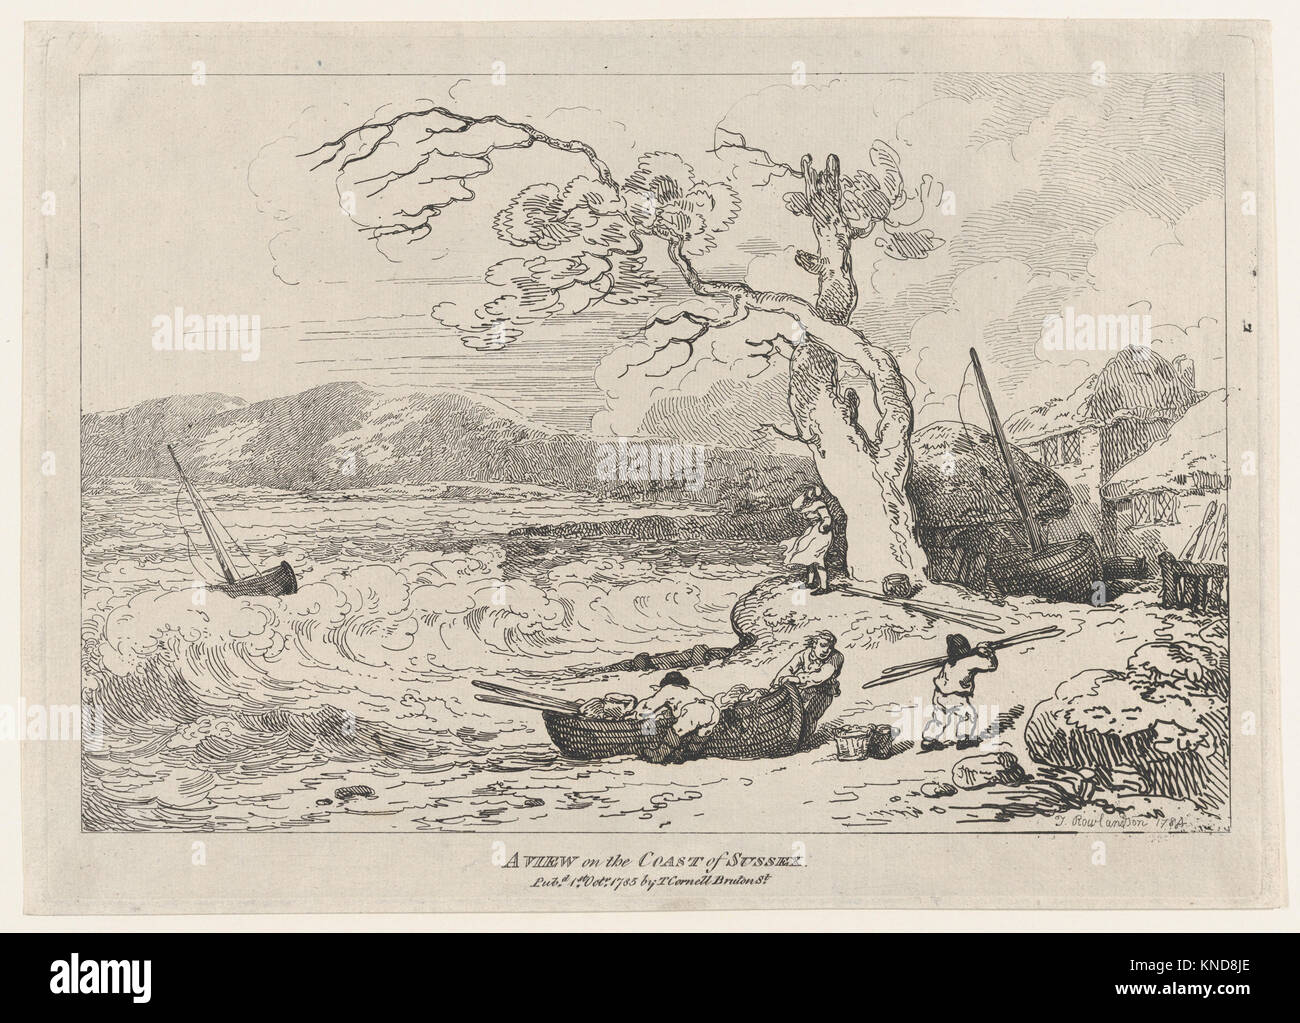 A View on the Coast of Sussex MET DP871854 392965 Artist: Thomas Rowlandson, British, London 1757?1827 London, Publisher: - Stock Image